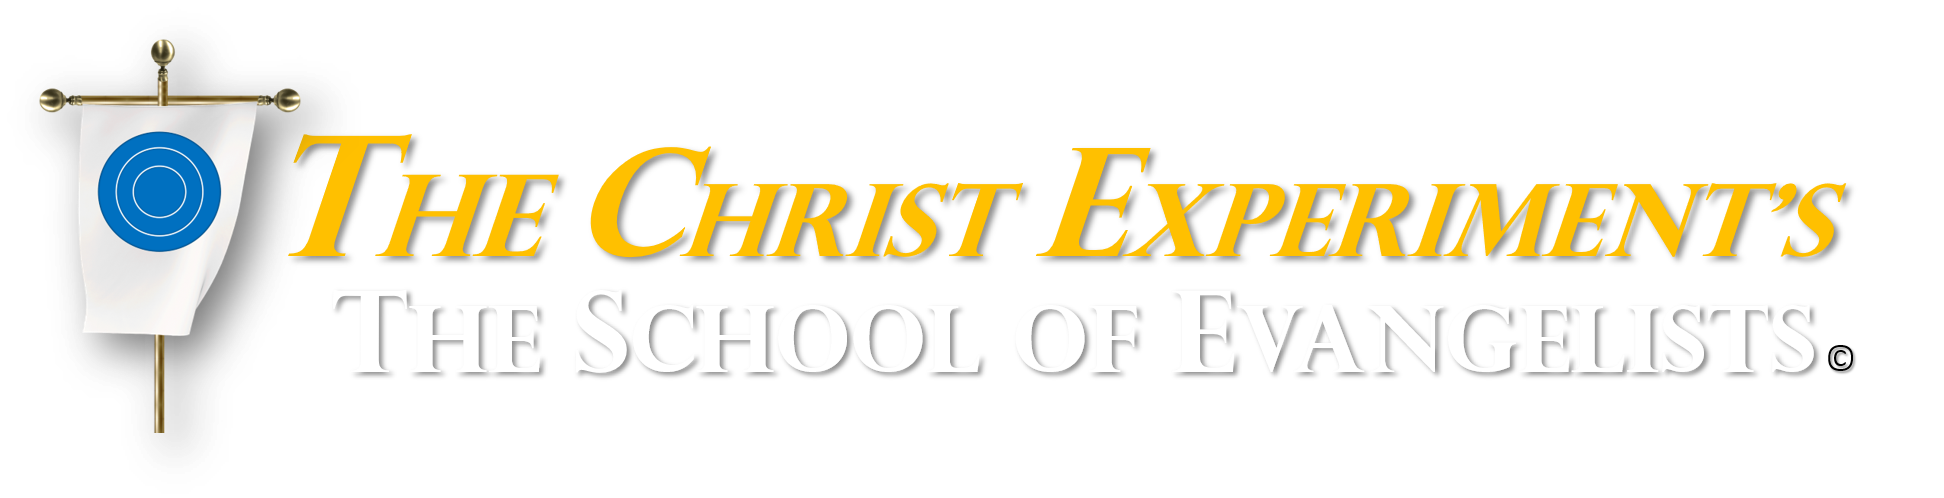 The Christ Experiment's School of Evangelists